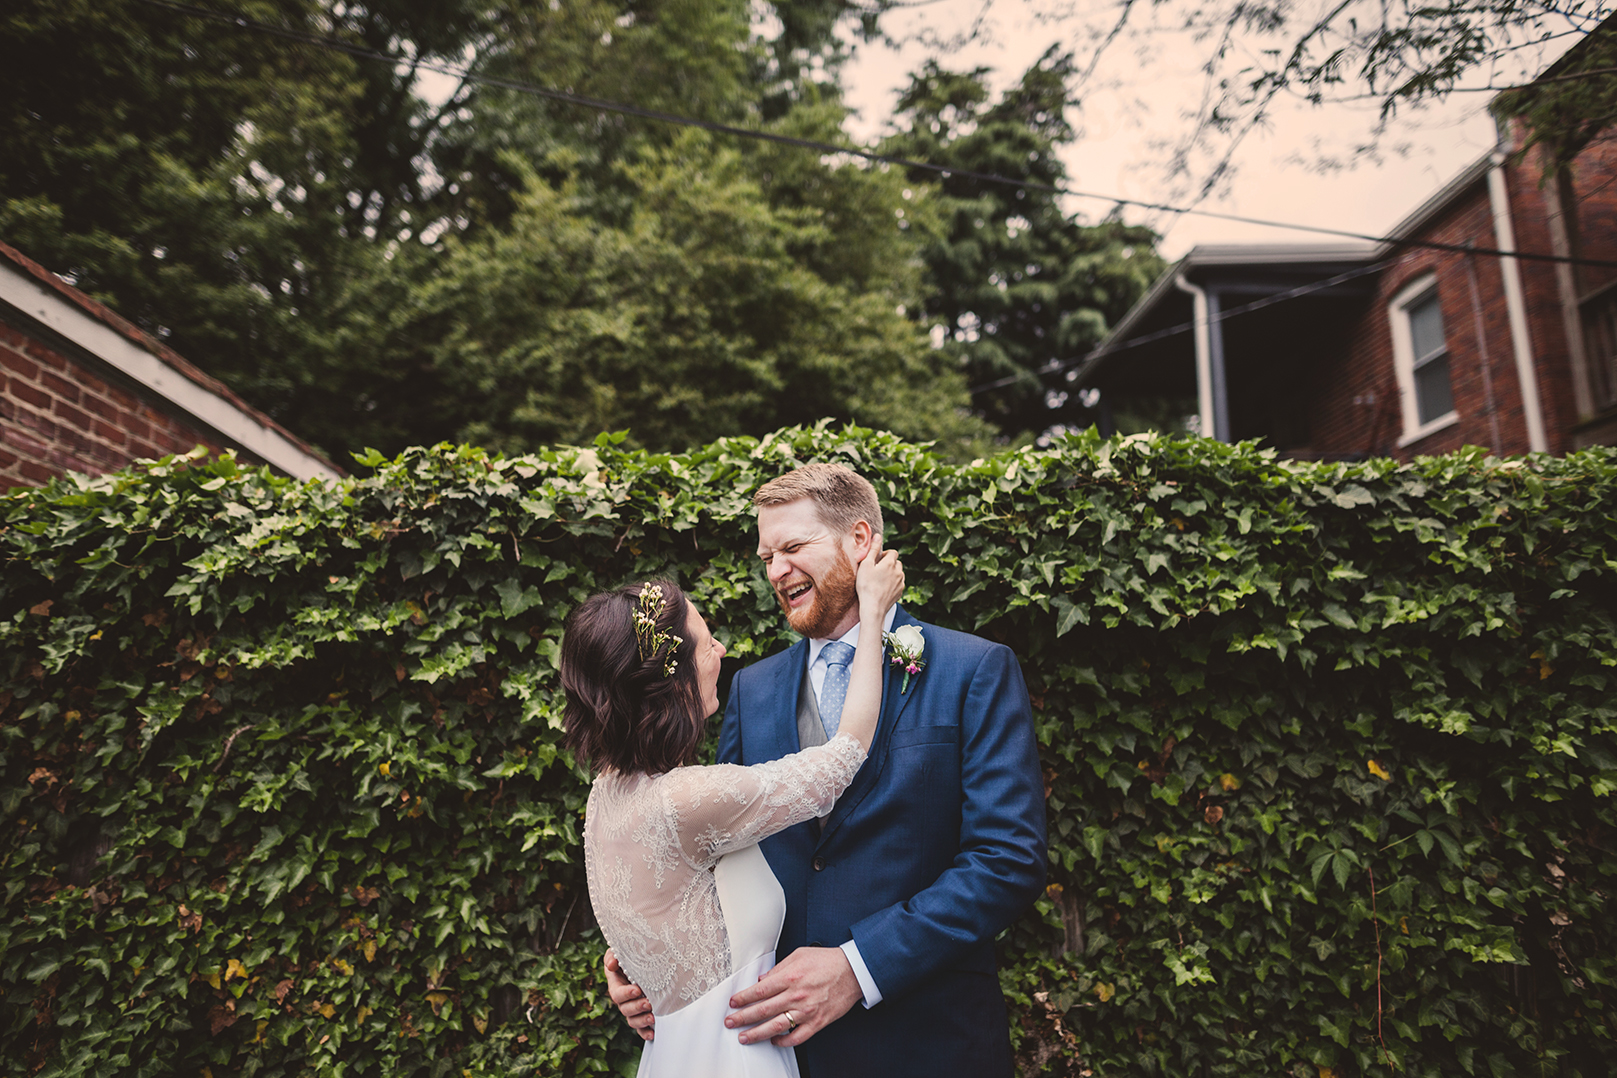 The pictures are exactly what we wanted. Not a single cliché pose, but a huge number of really excellent shots that really captured the mood of the day. We keep finding new favorites when we go back and look. Highly, highly recommended. - - SAM A.